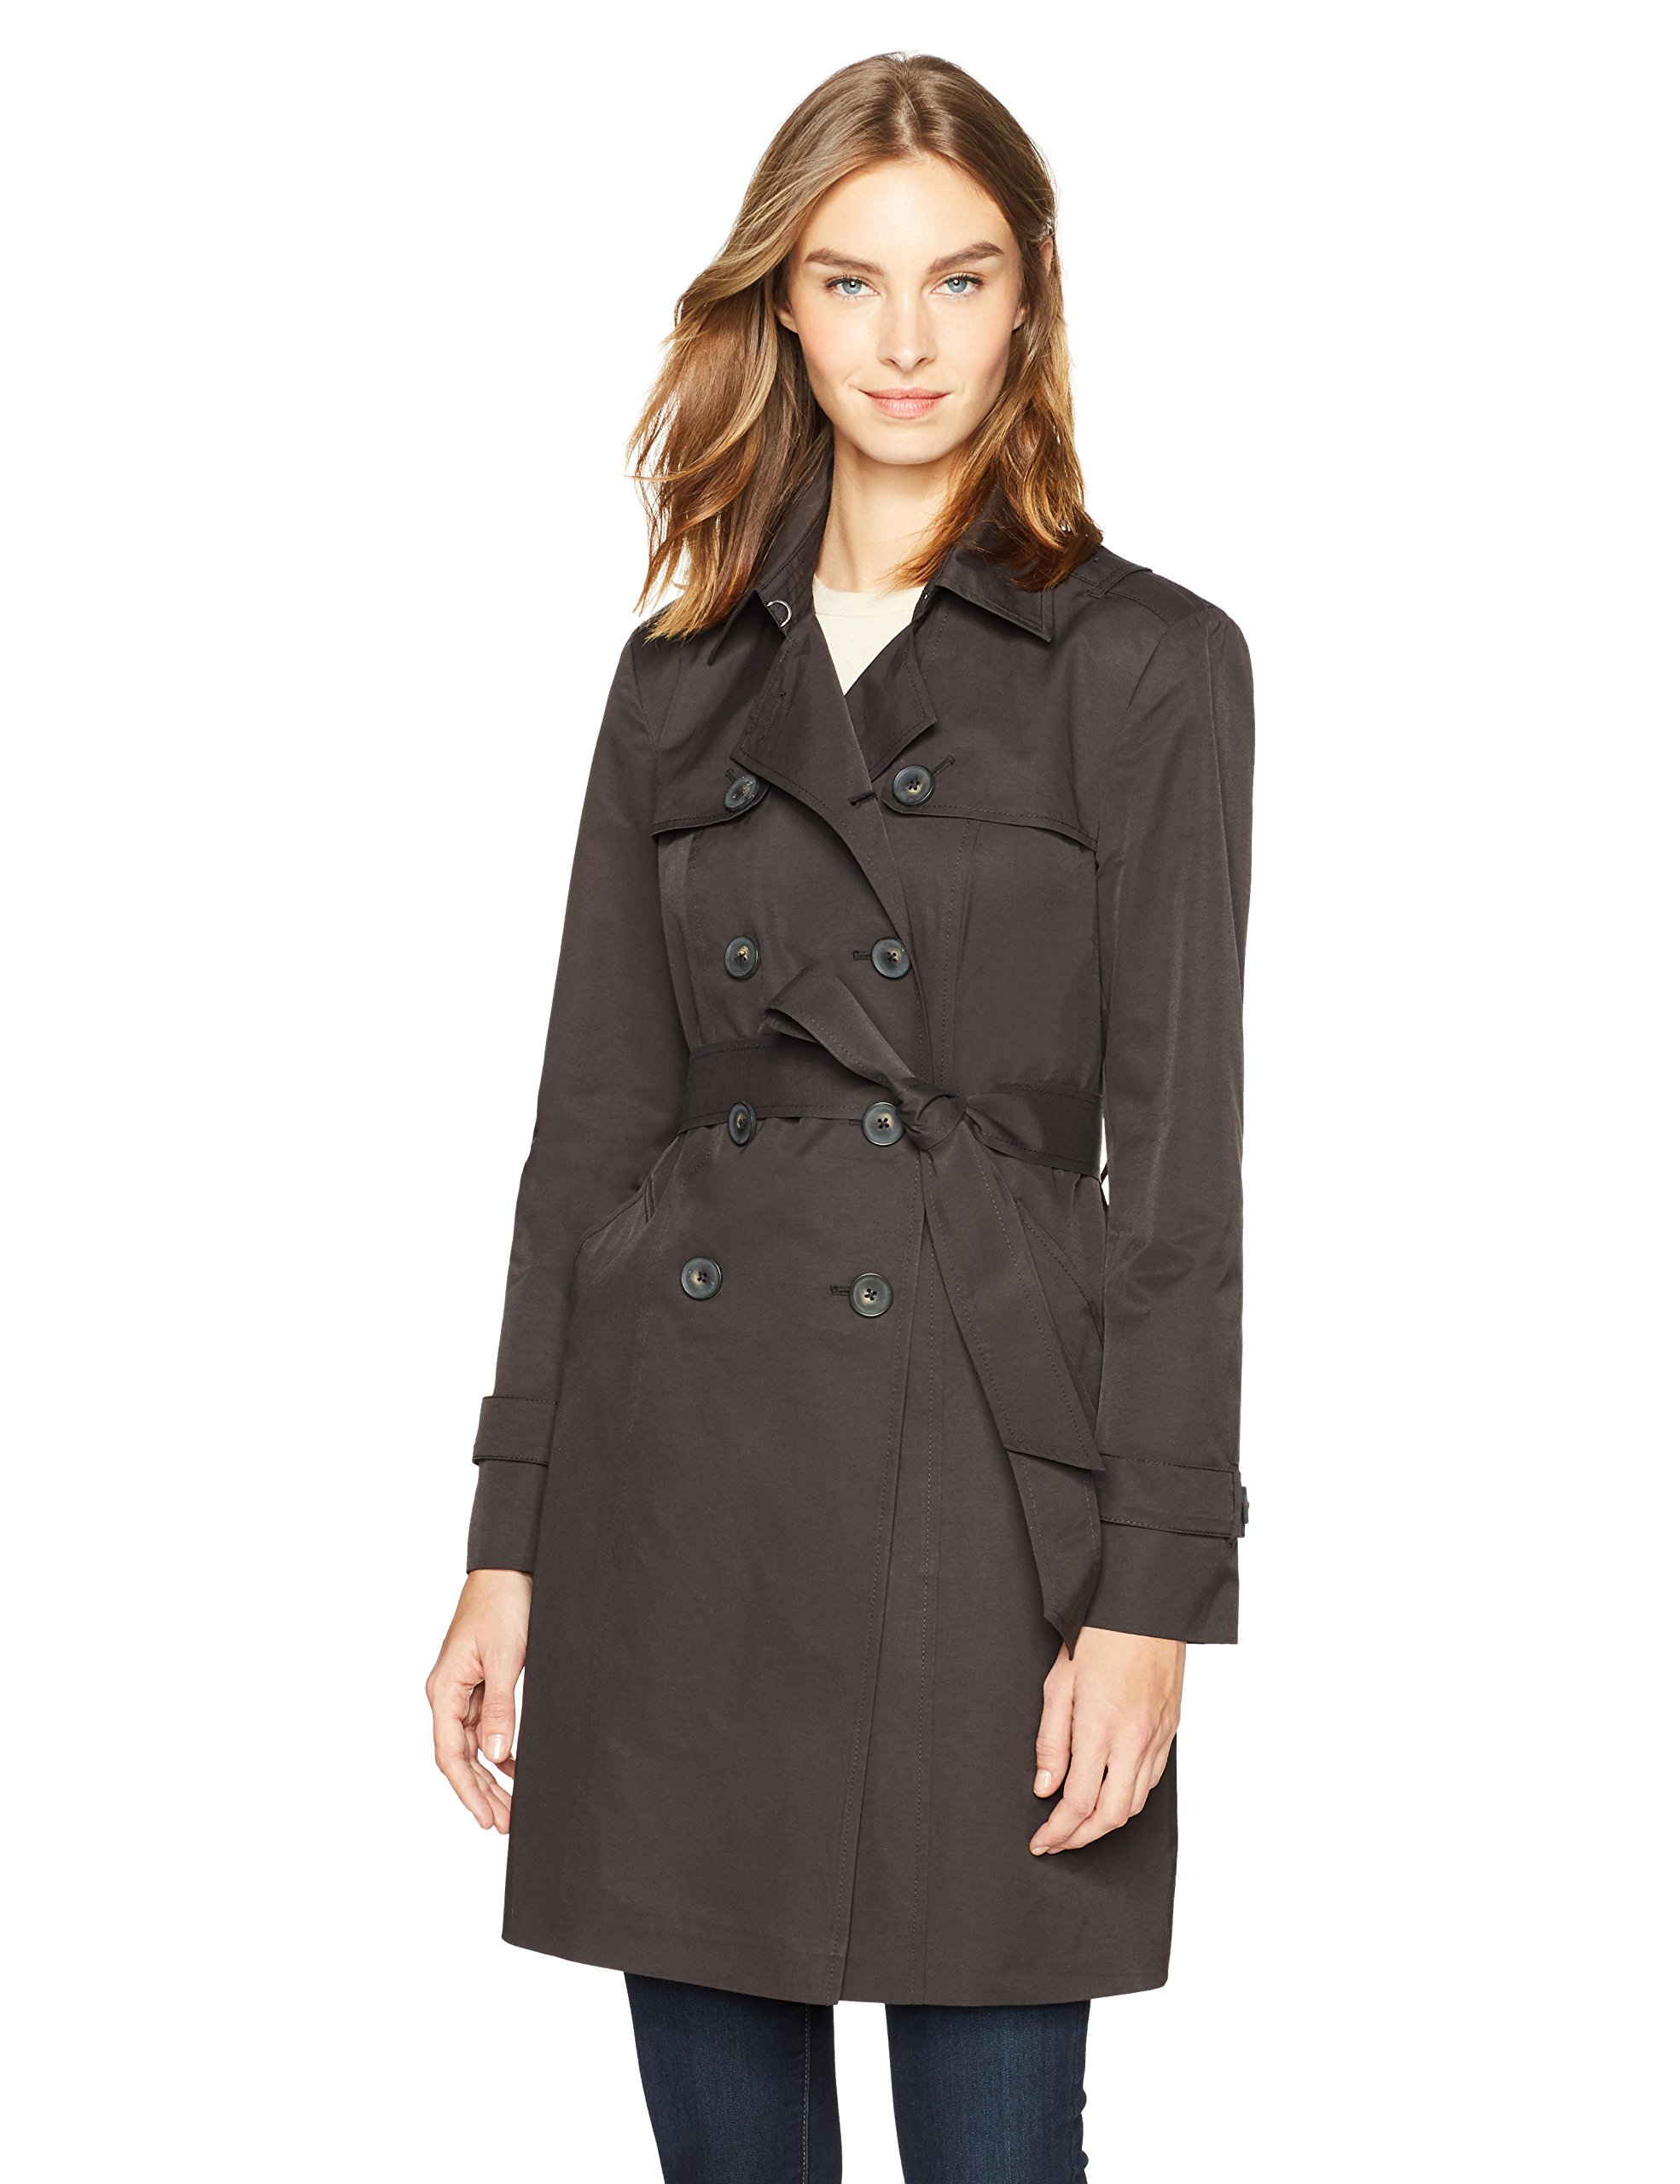 Haven Outerwear Women's Double-Breasted Trench Raincoat, Black, Large